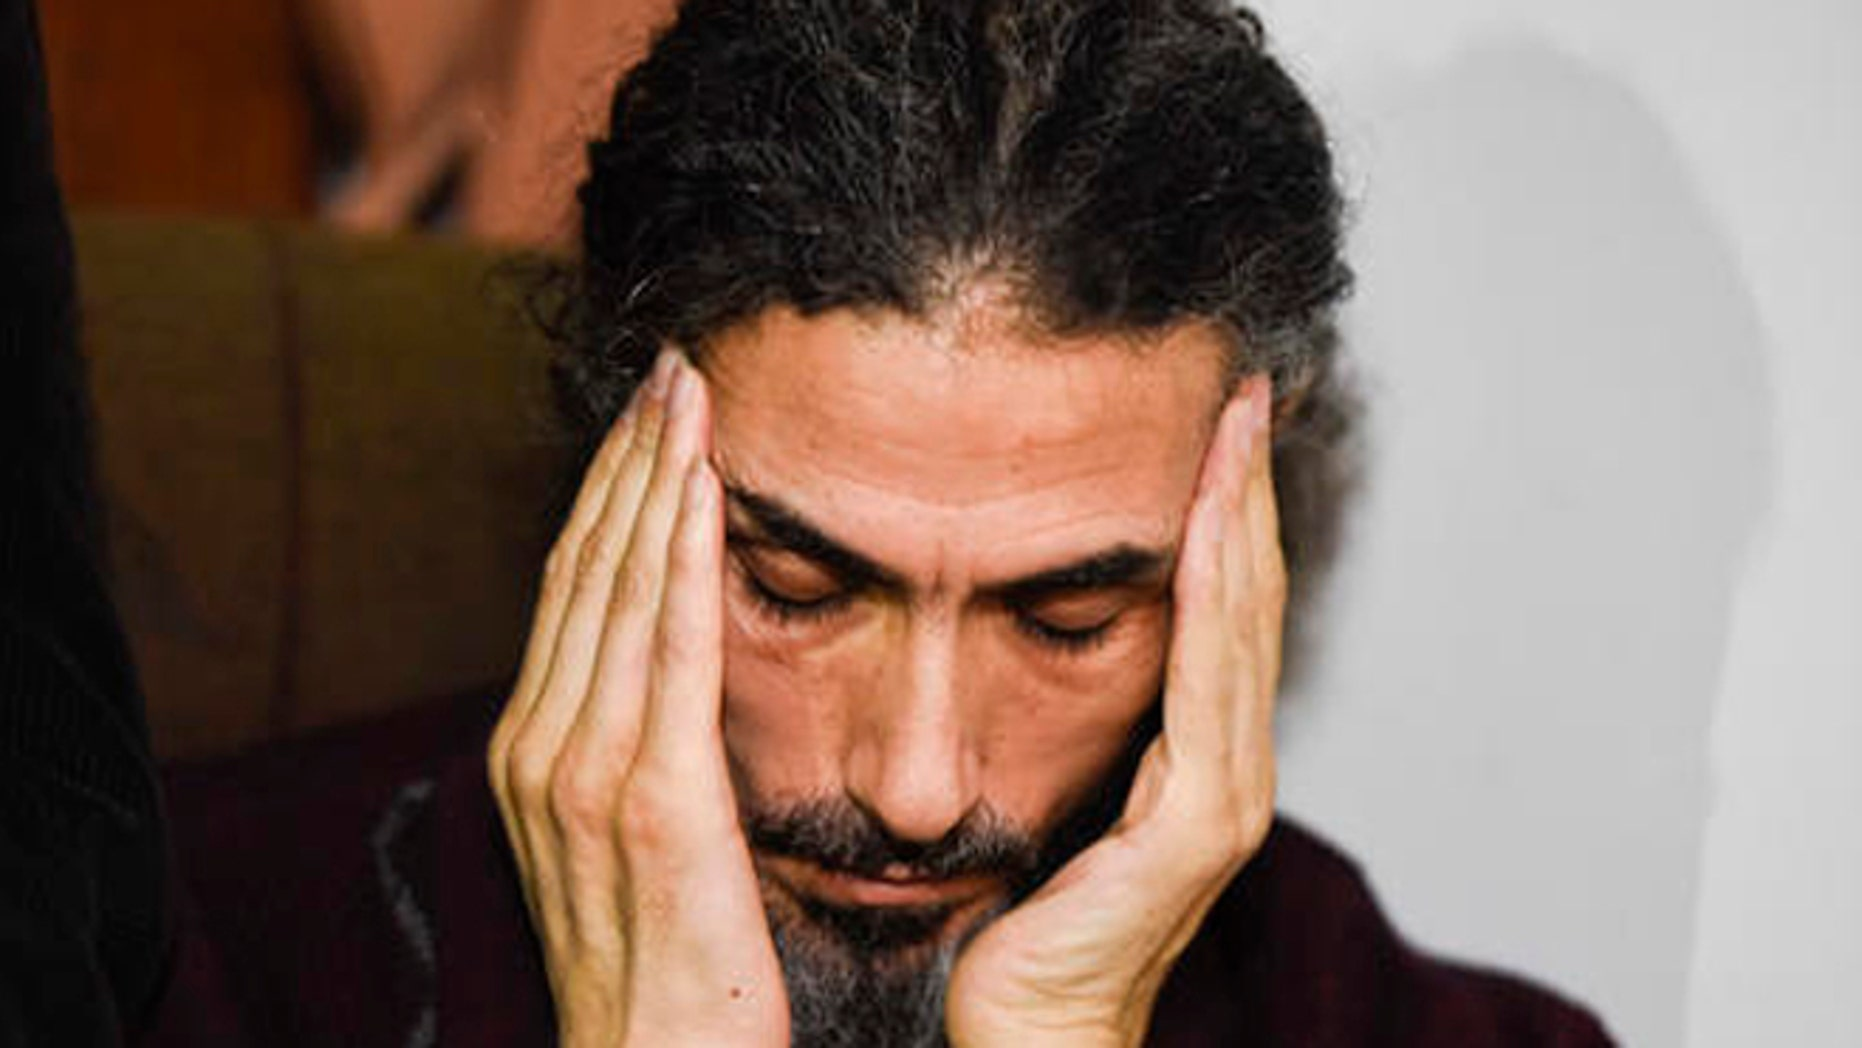 Former Guantanamo detainee Syrian Abu Wa'el Dhiab listens to a question as he holds a press conference at his apartment in Montevideo, Uruguay, Friday, Sept. 30, 2016. Uruguay's government says it is searching for another country to take Dhiab who is threatening to die on a hunger strike if he's not allowed to reunite with his family elsewhere. (AP Photo/Matilde Campodonico)